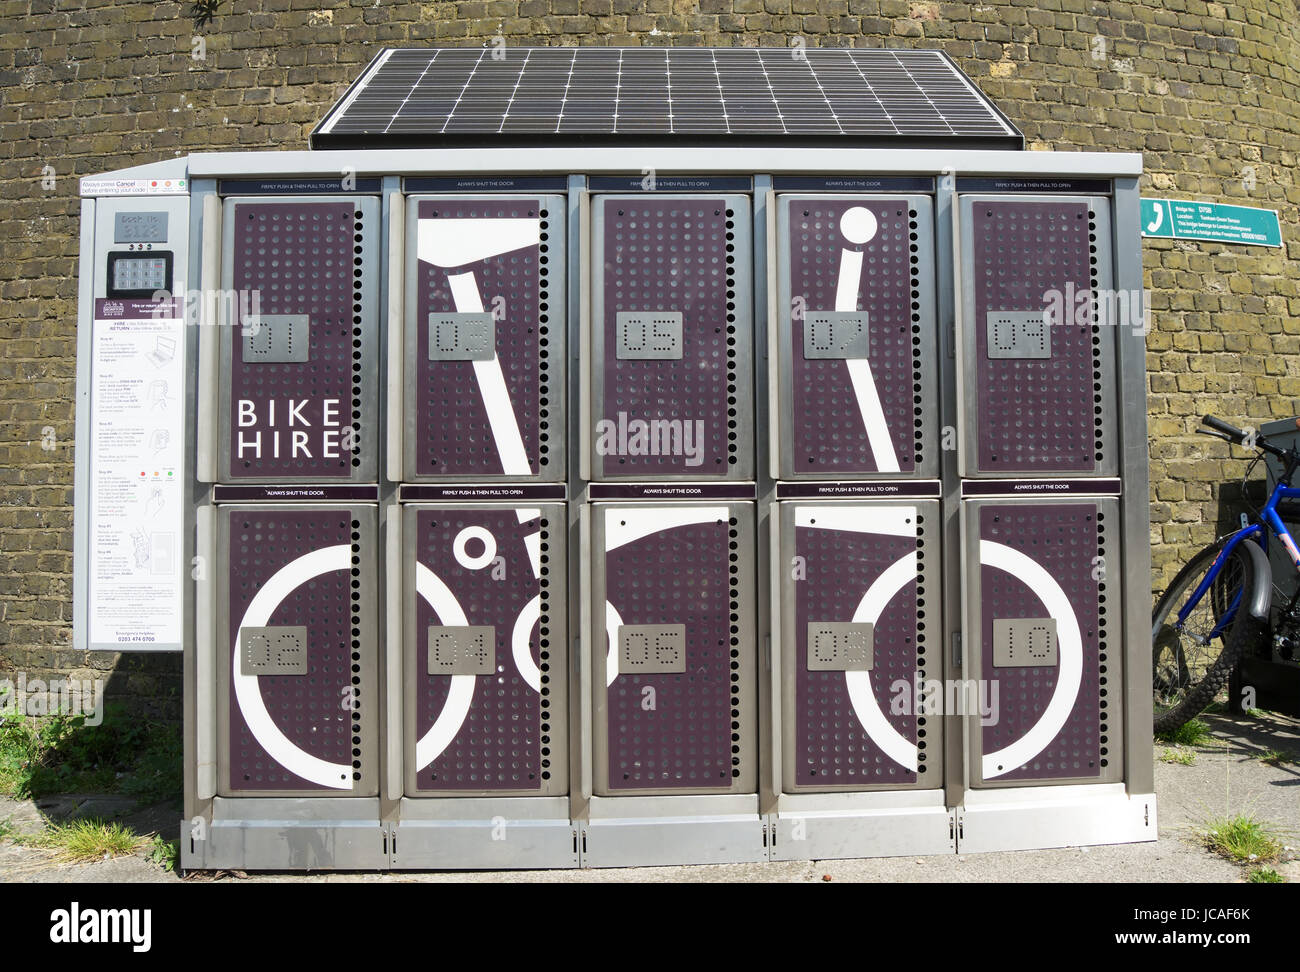 folding bike hire point, chiswick, london, england, with solar panel on top - Stock Image